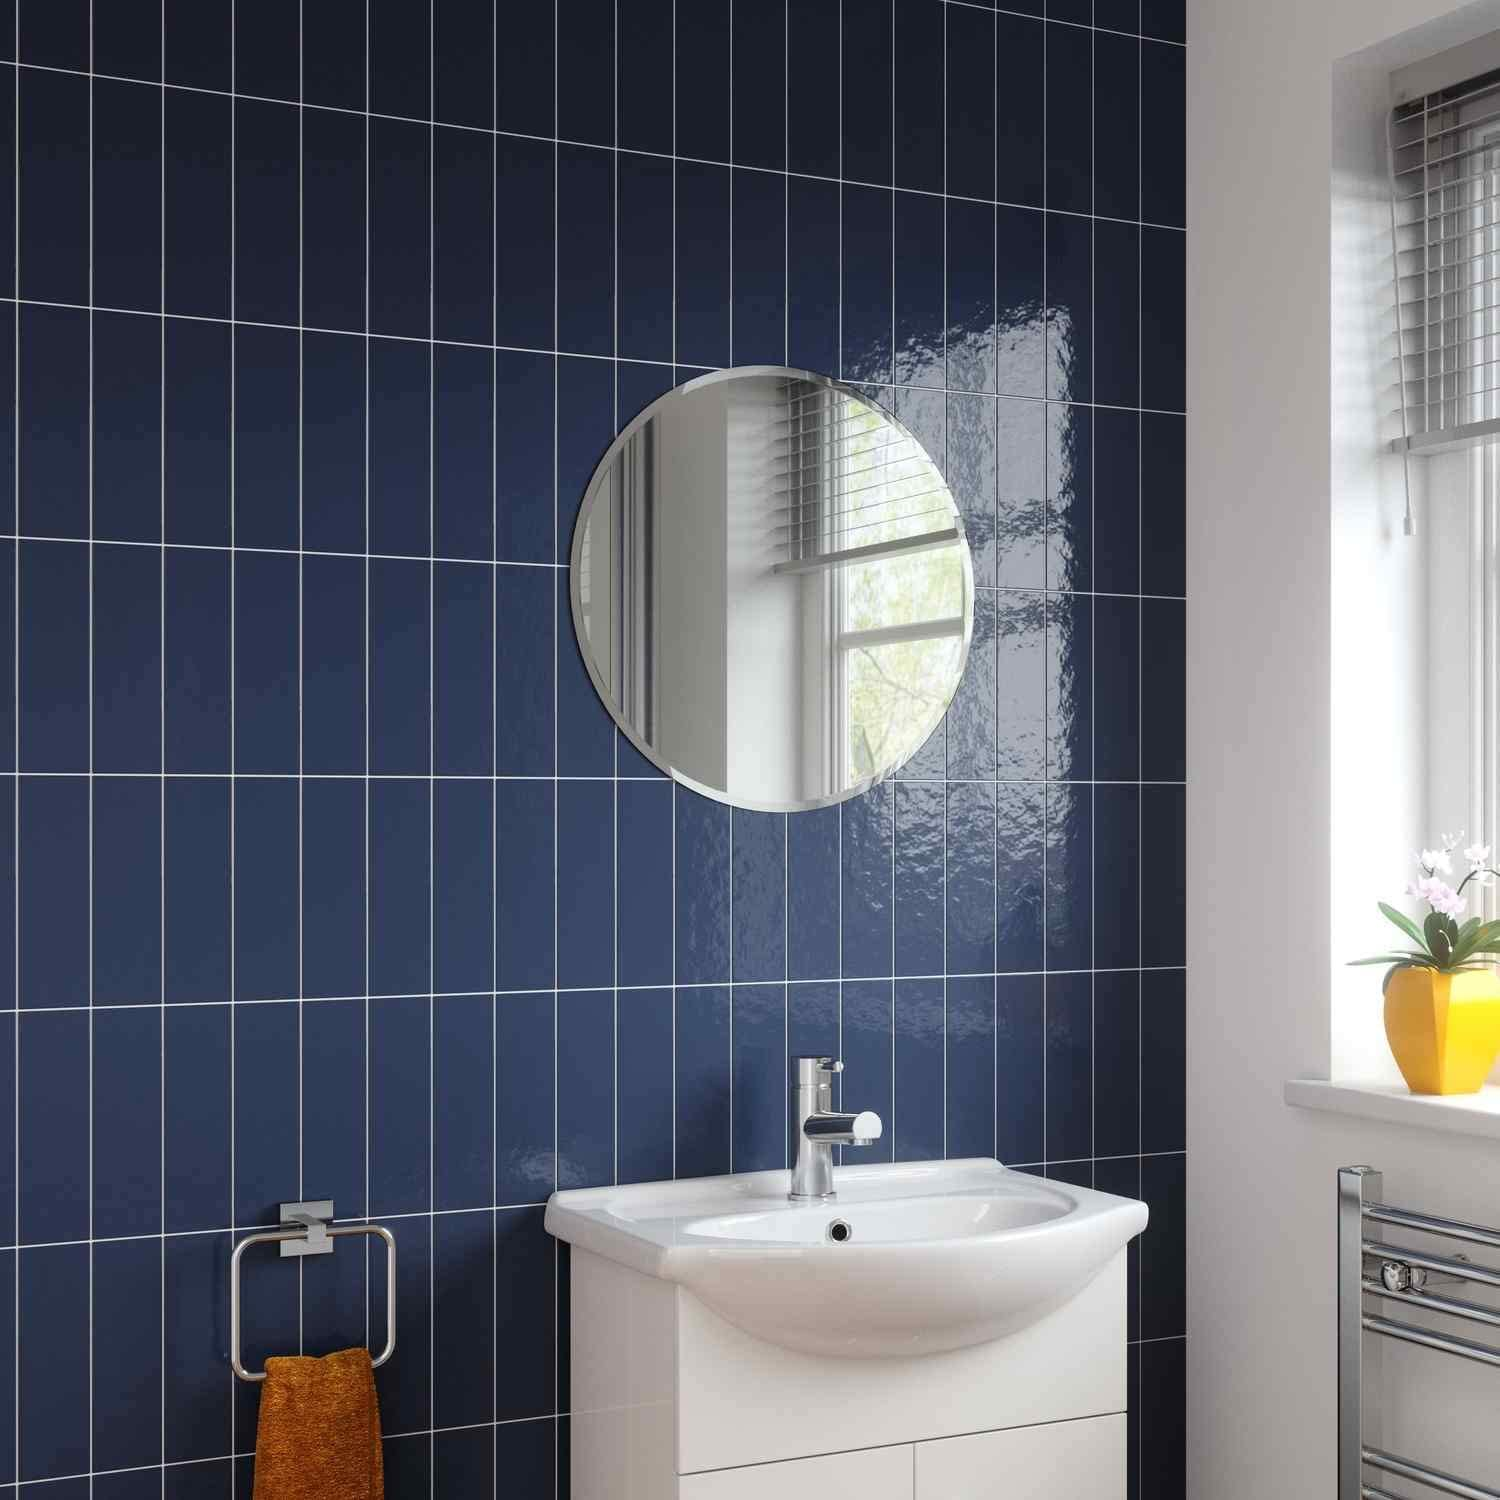 Bathroom Mirror Modern Rectangle Frameless Bevelled Wall Mounted 450 X 300mm Furniture Home Kitchen Umoonproductions Com